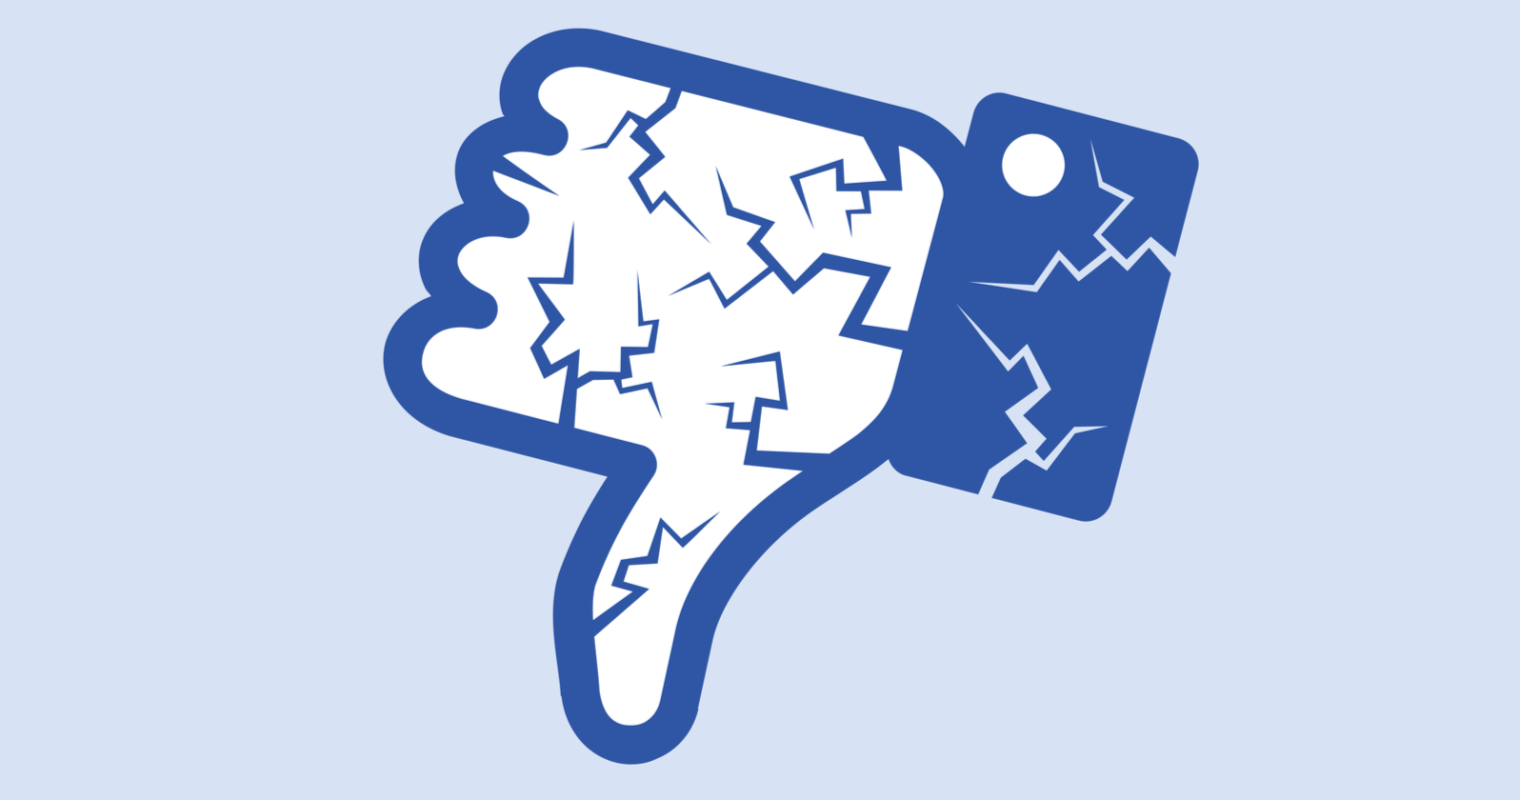 Facebook Explains October 4 Outage